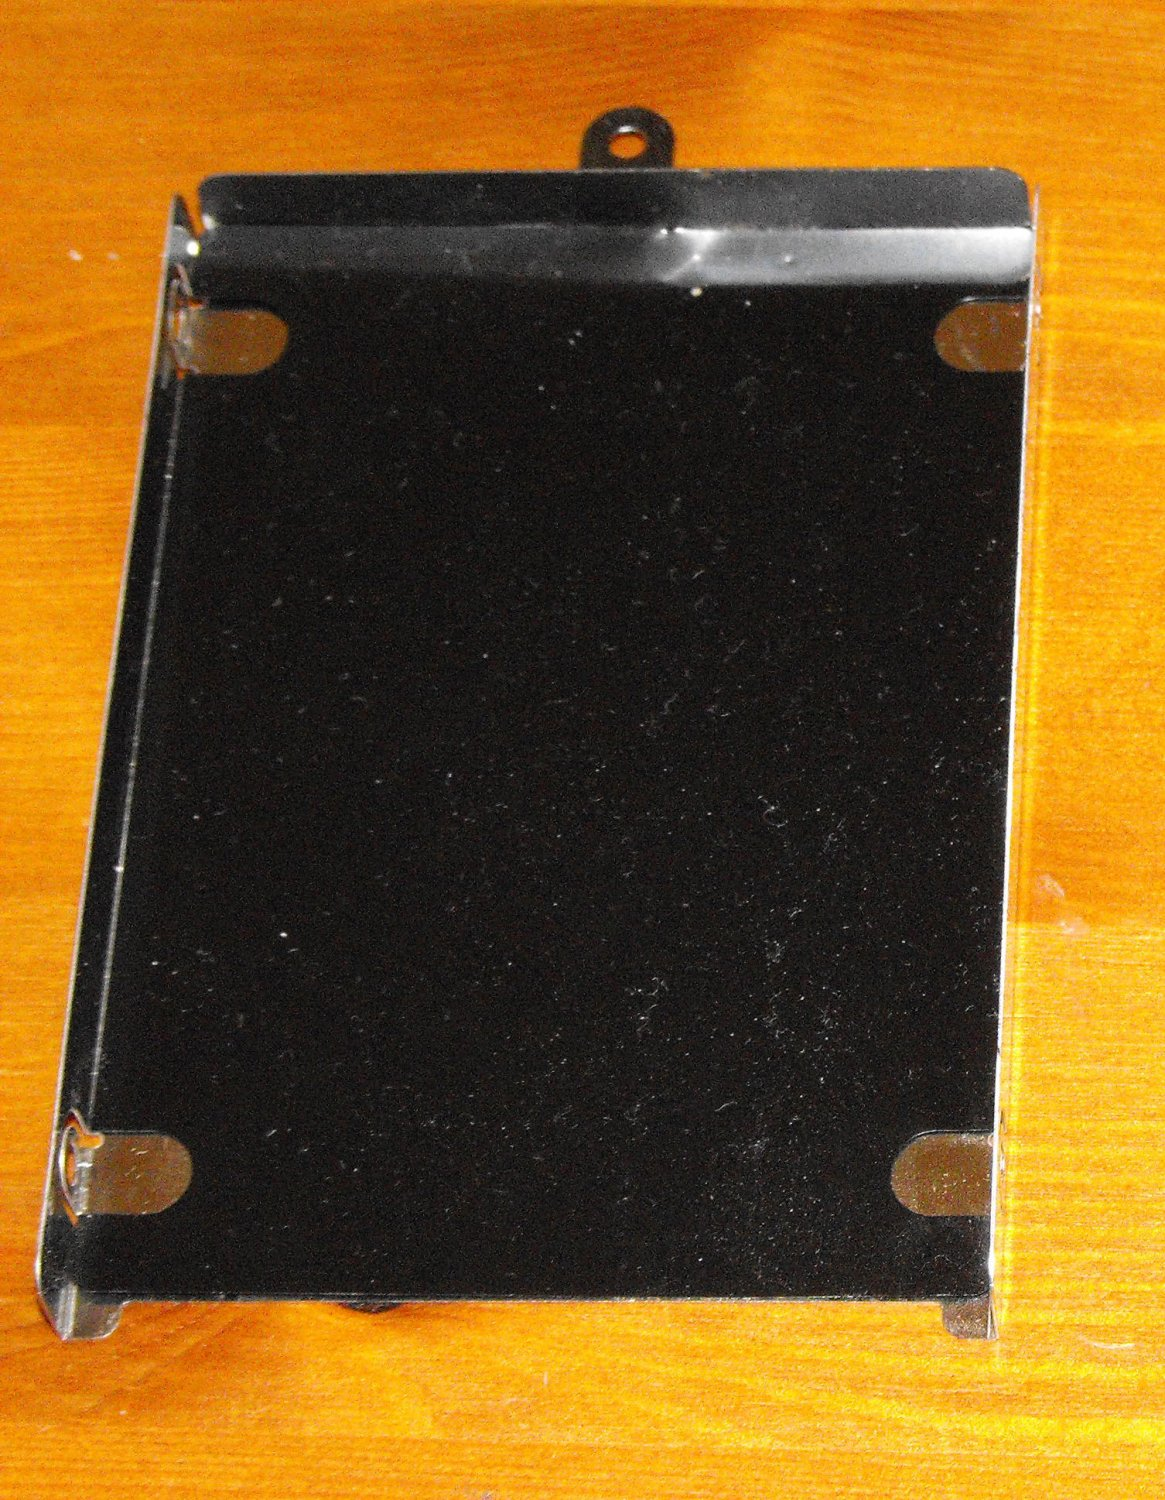 Packard Bell EasyNote R1938 internal HDD Caddy